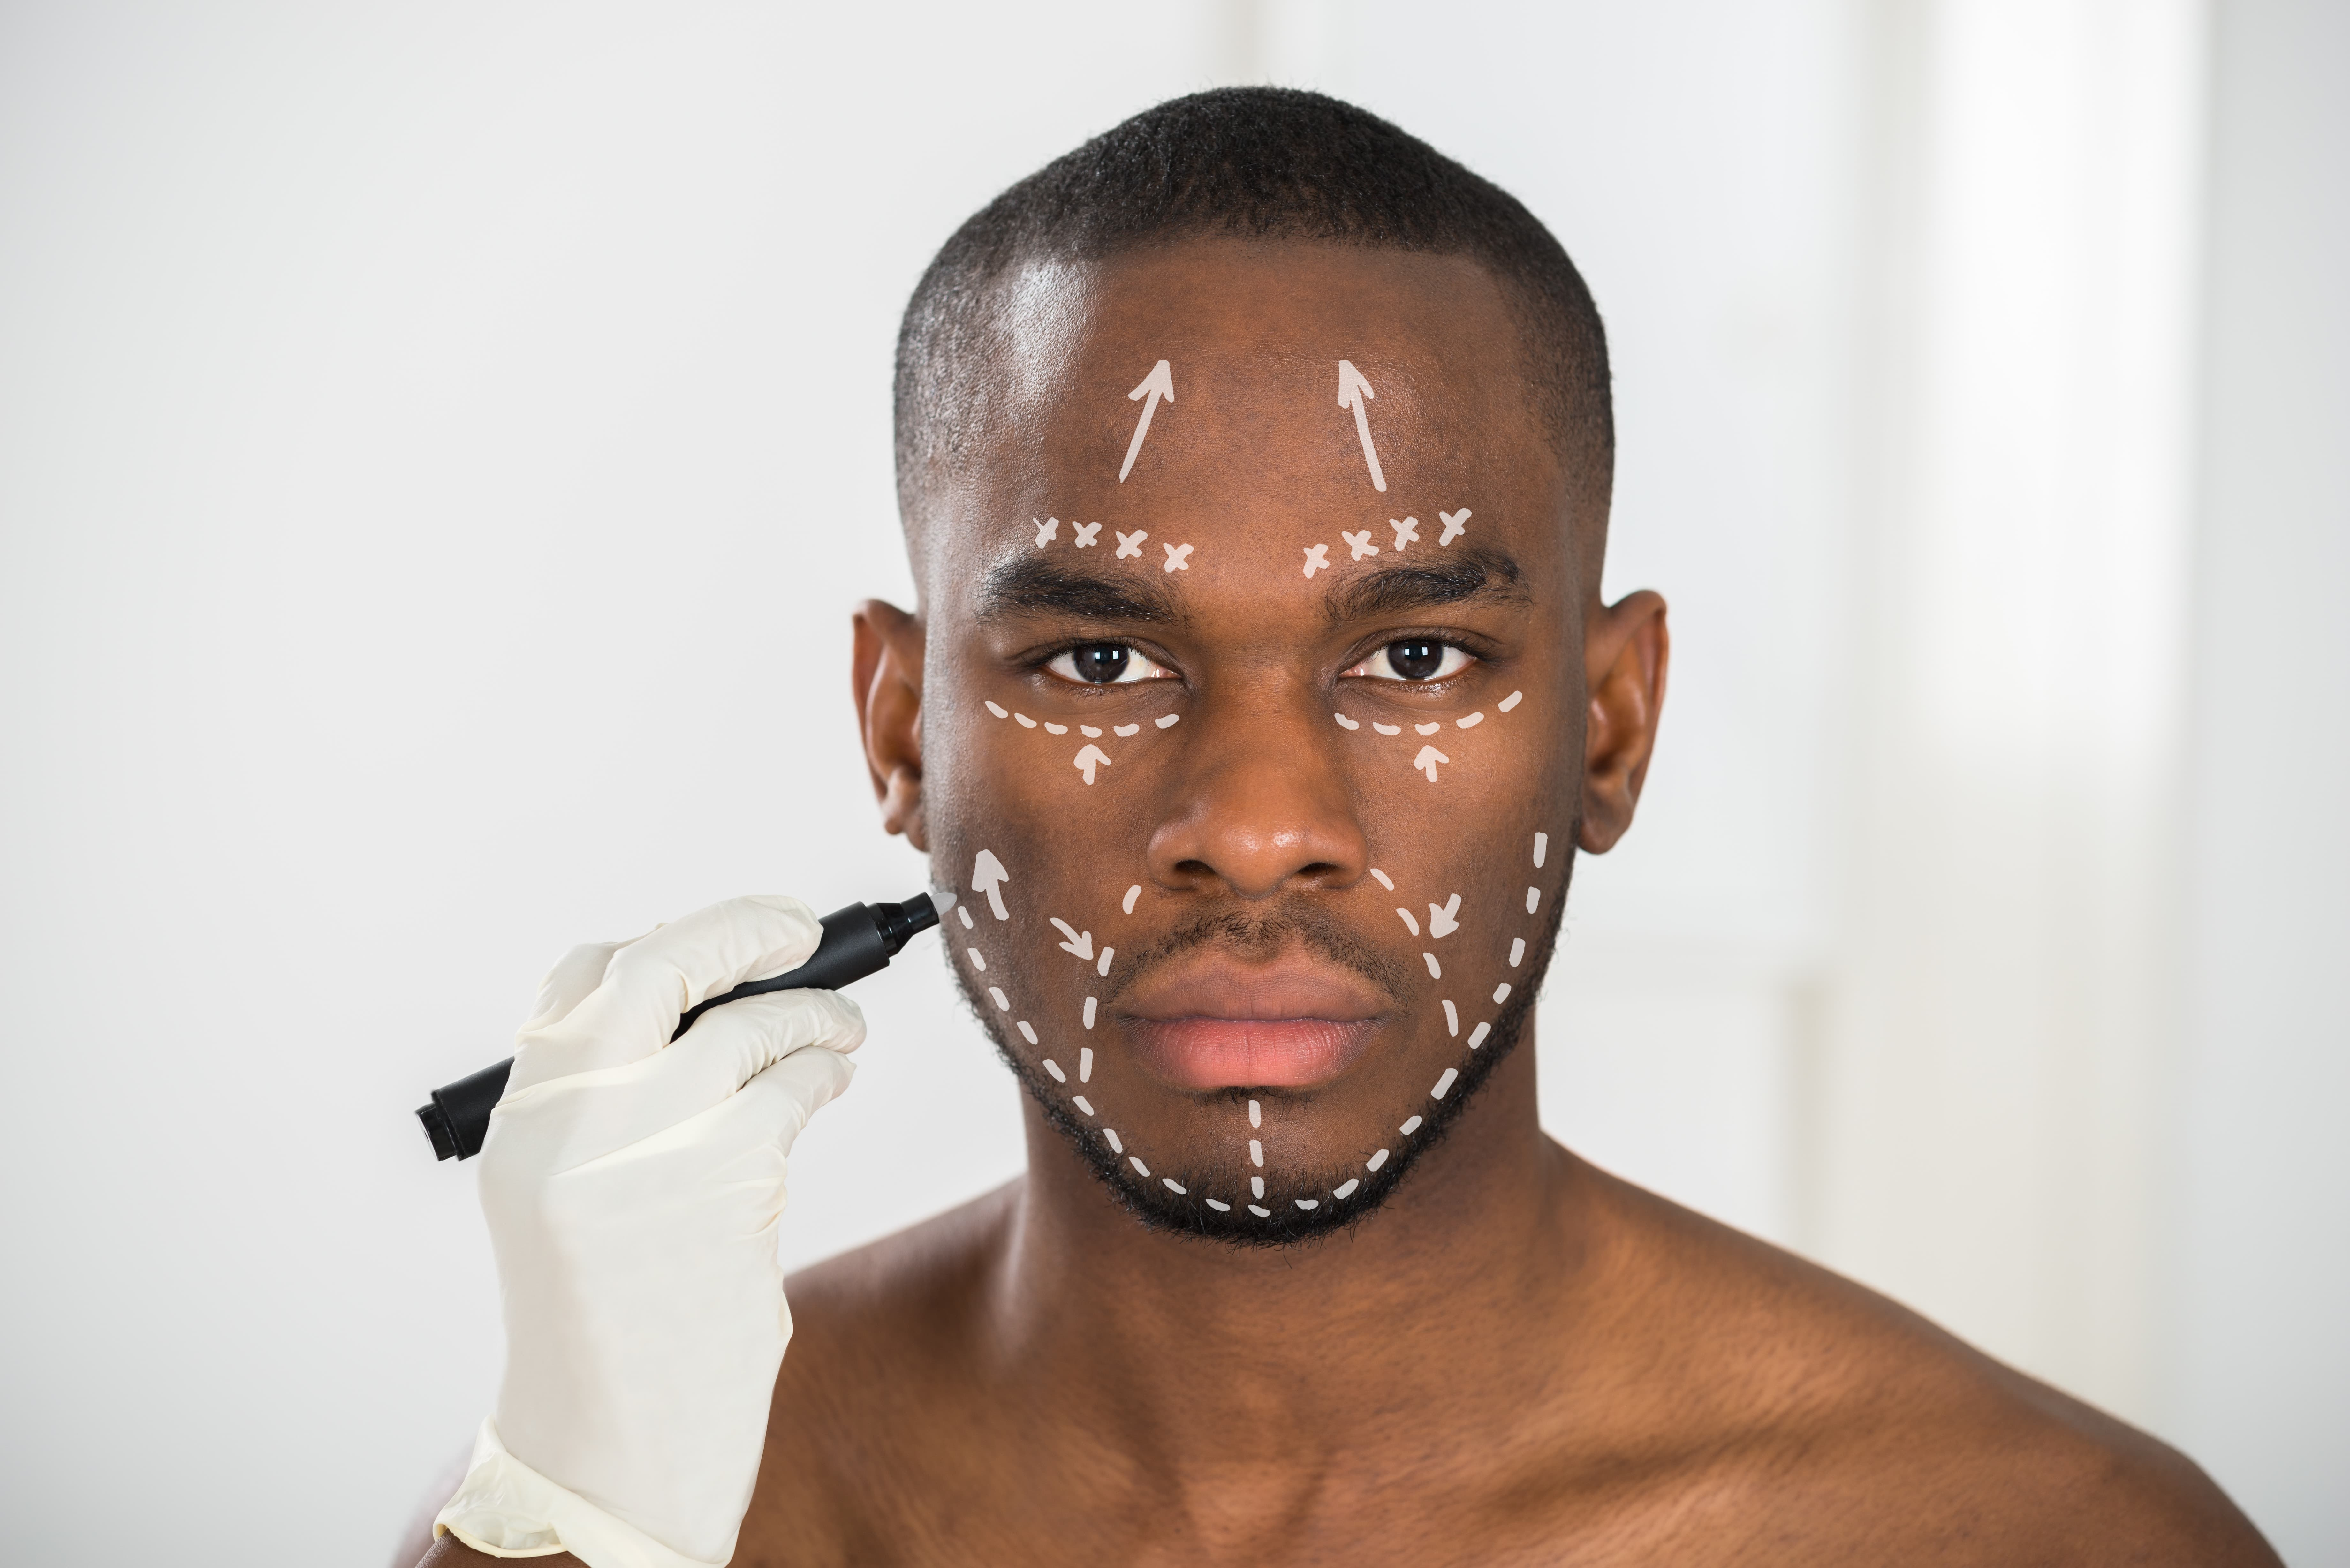 Static Wrinkle Reduction, marks on mans face, Cosmetic Treatments, Cutting Edge Aesthetics, East Sussex